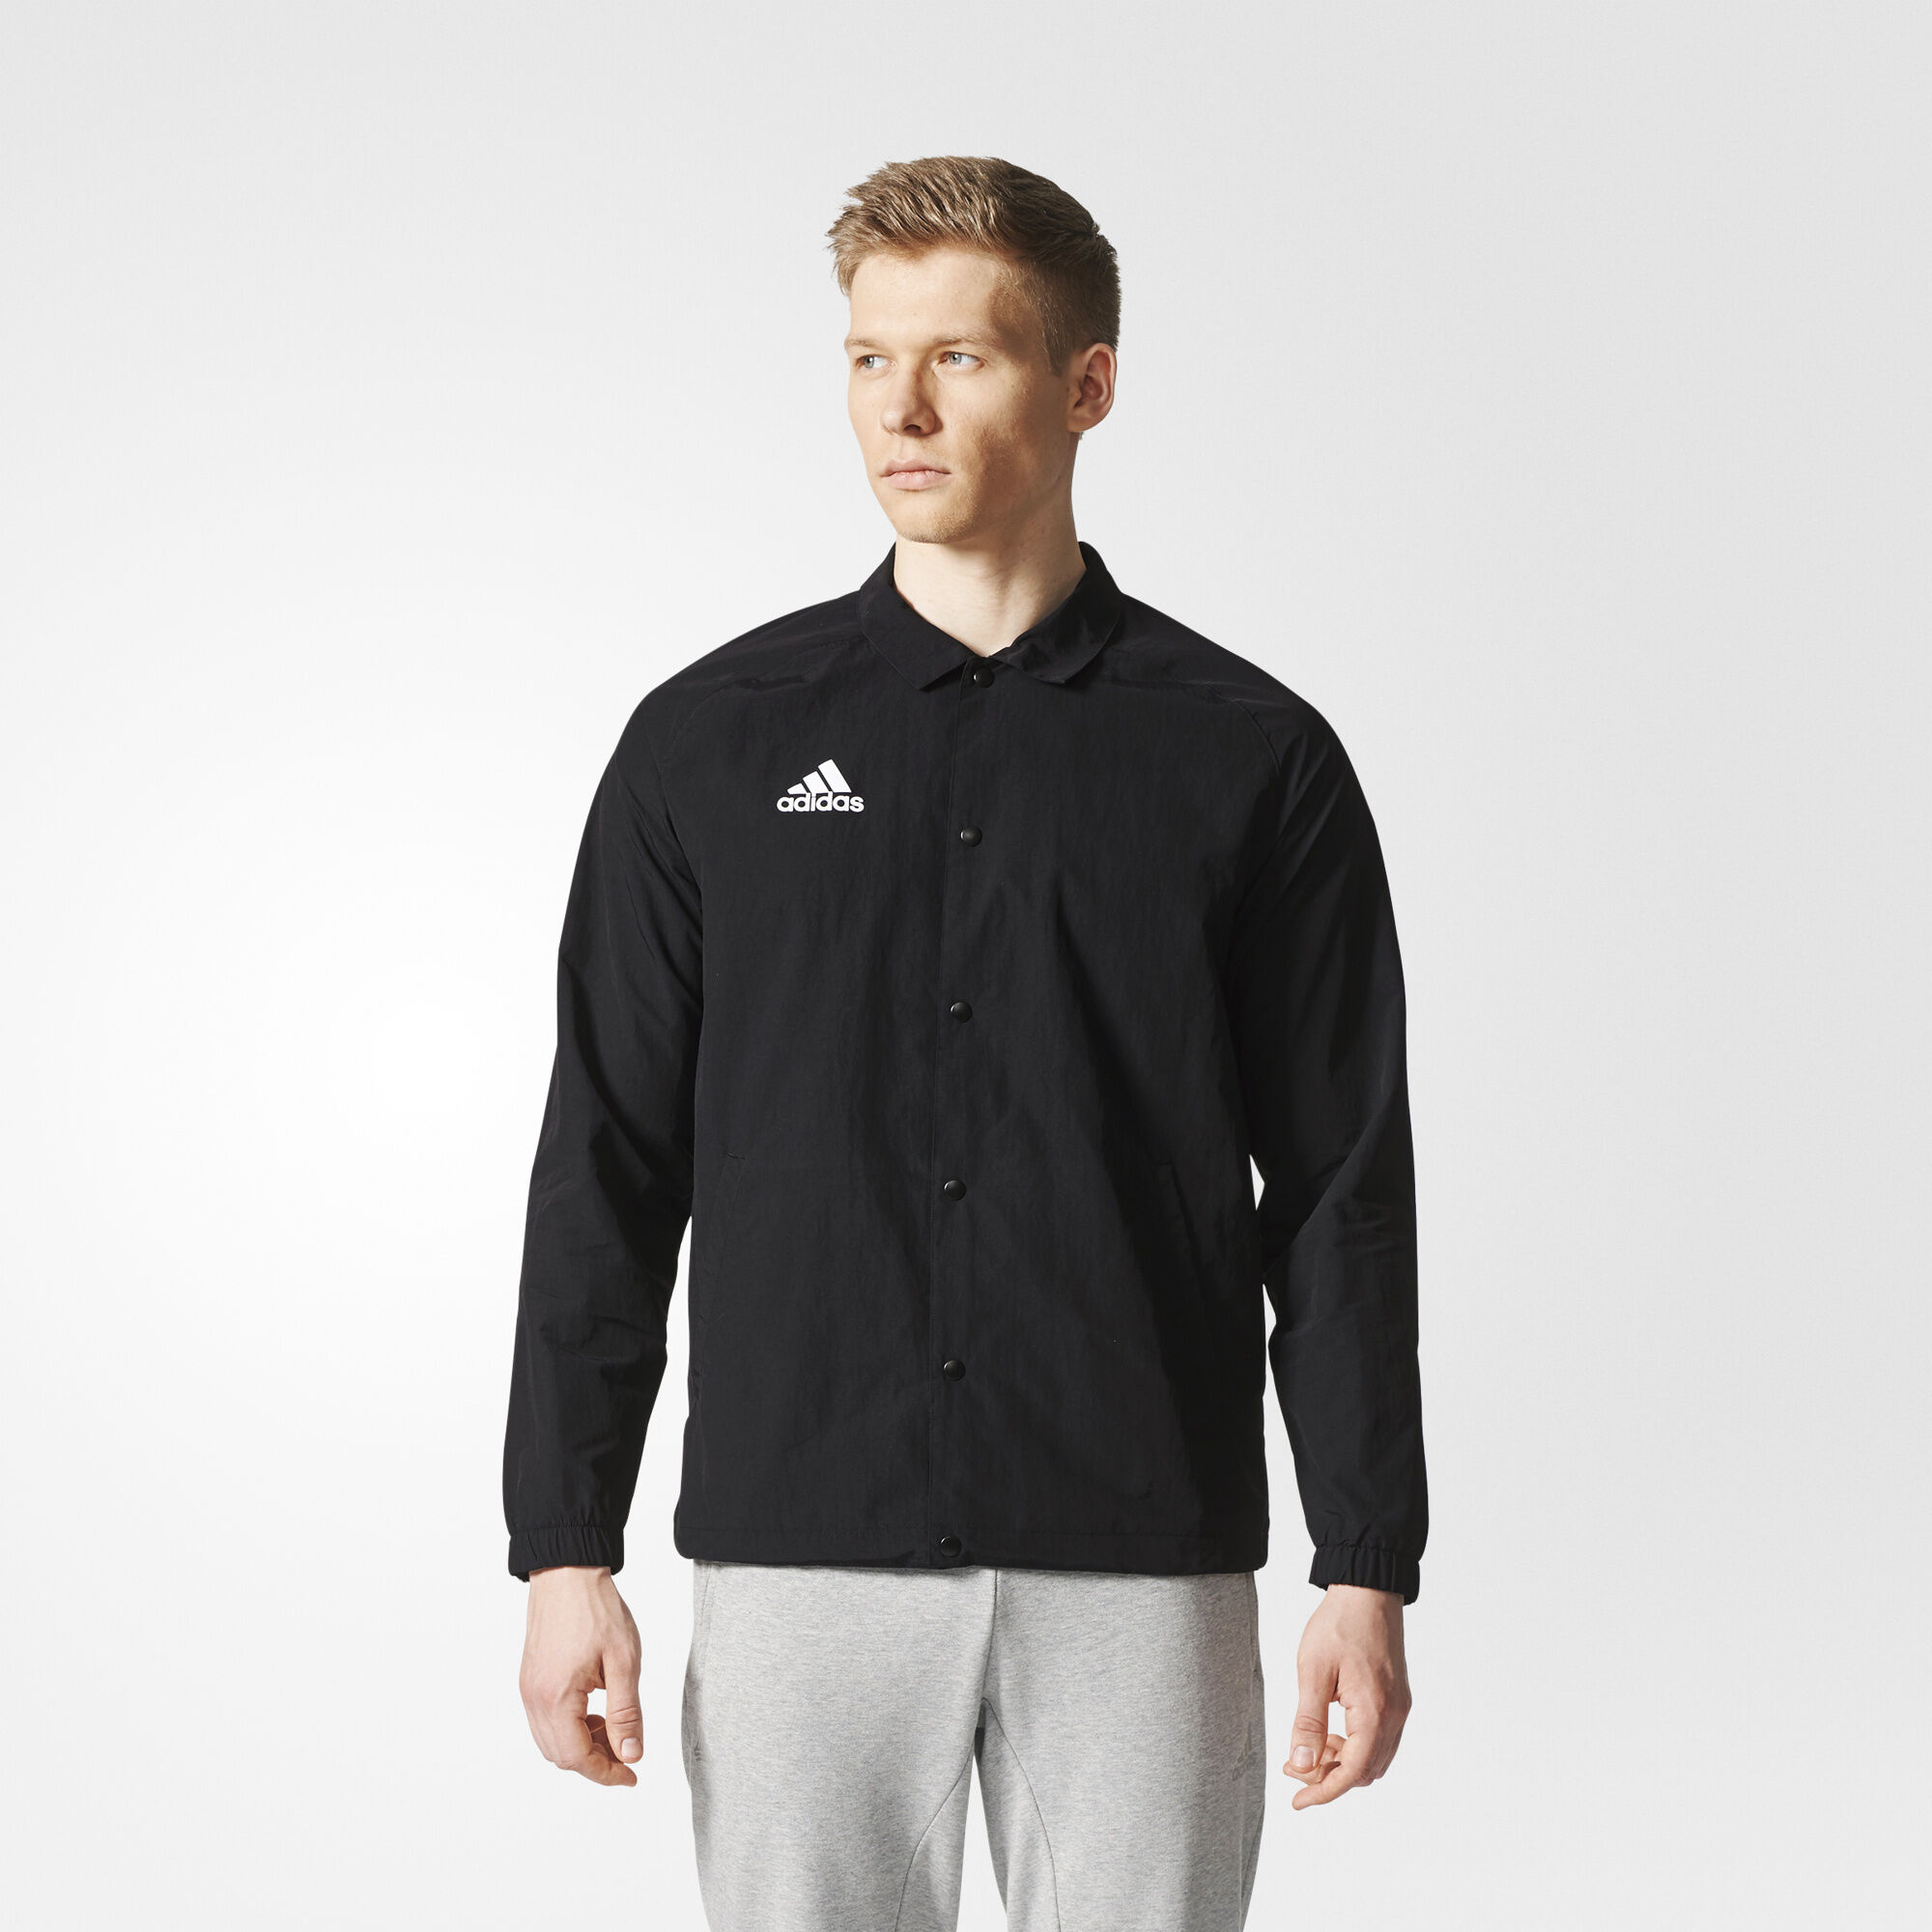 63521bfb5c8 Buy adidas sweater mens price   OFF41% Discounted